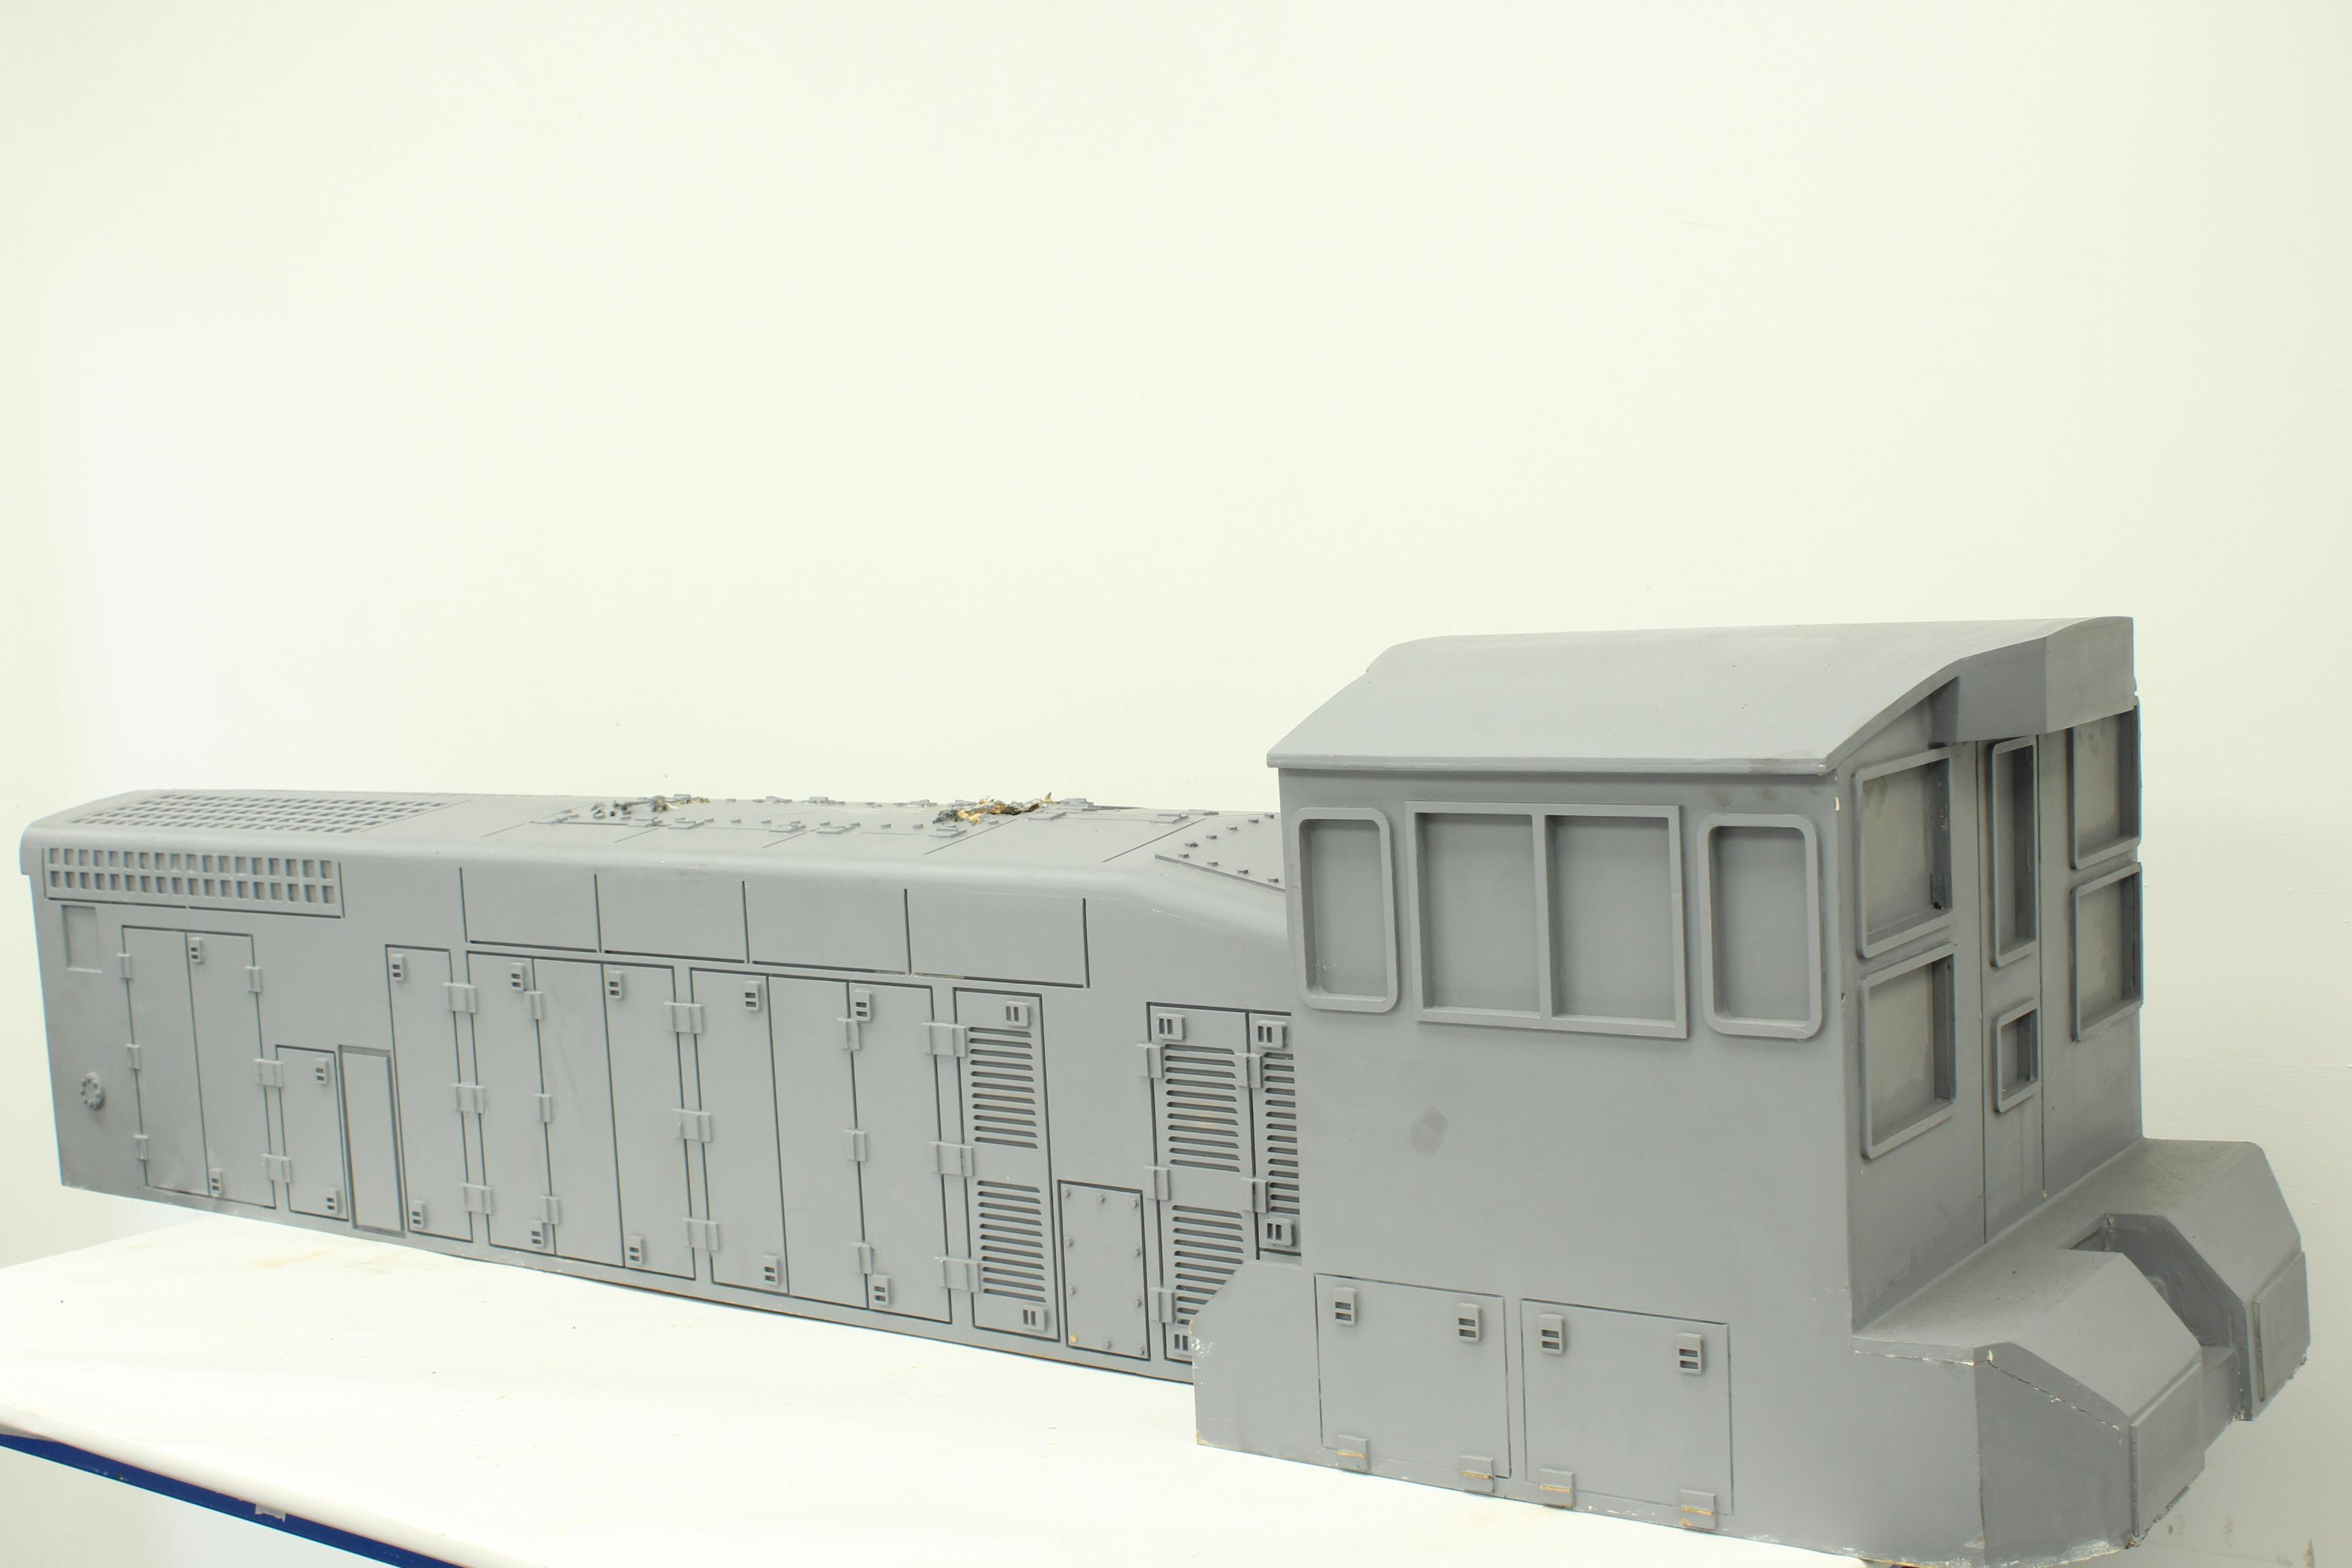 Part-built 7 1/4 inch gauge EMD SW1500 battery-electric